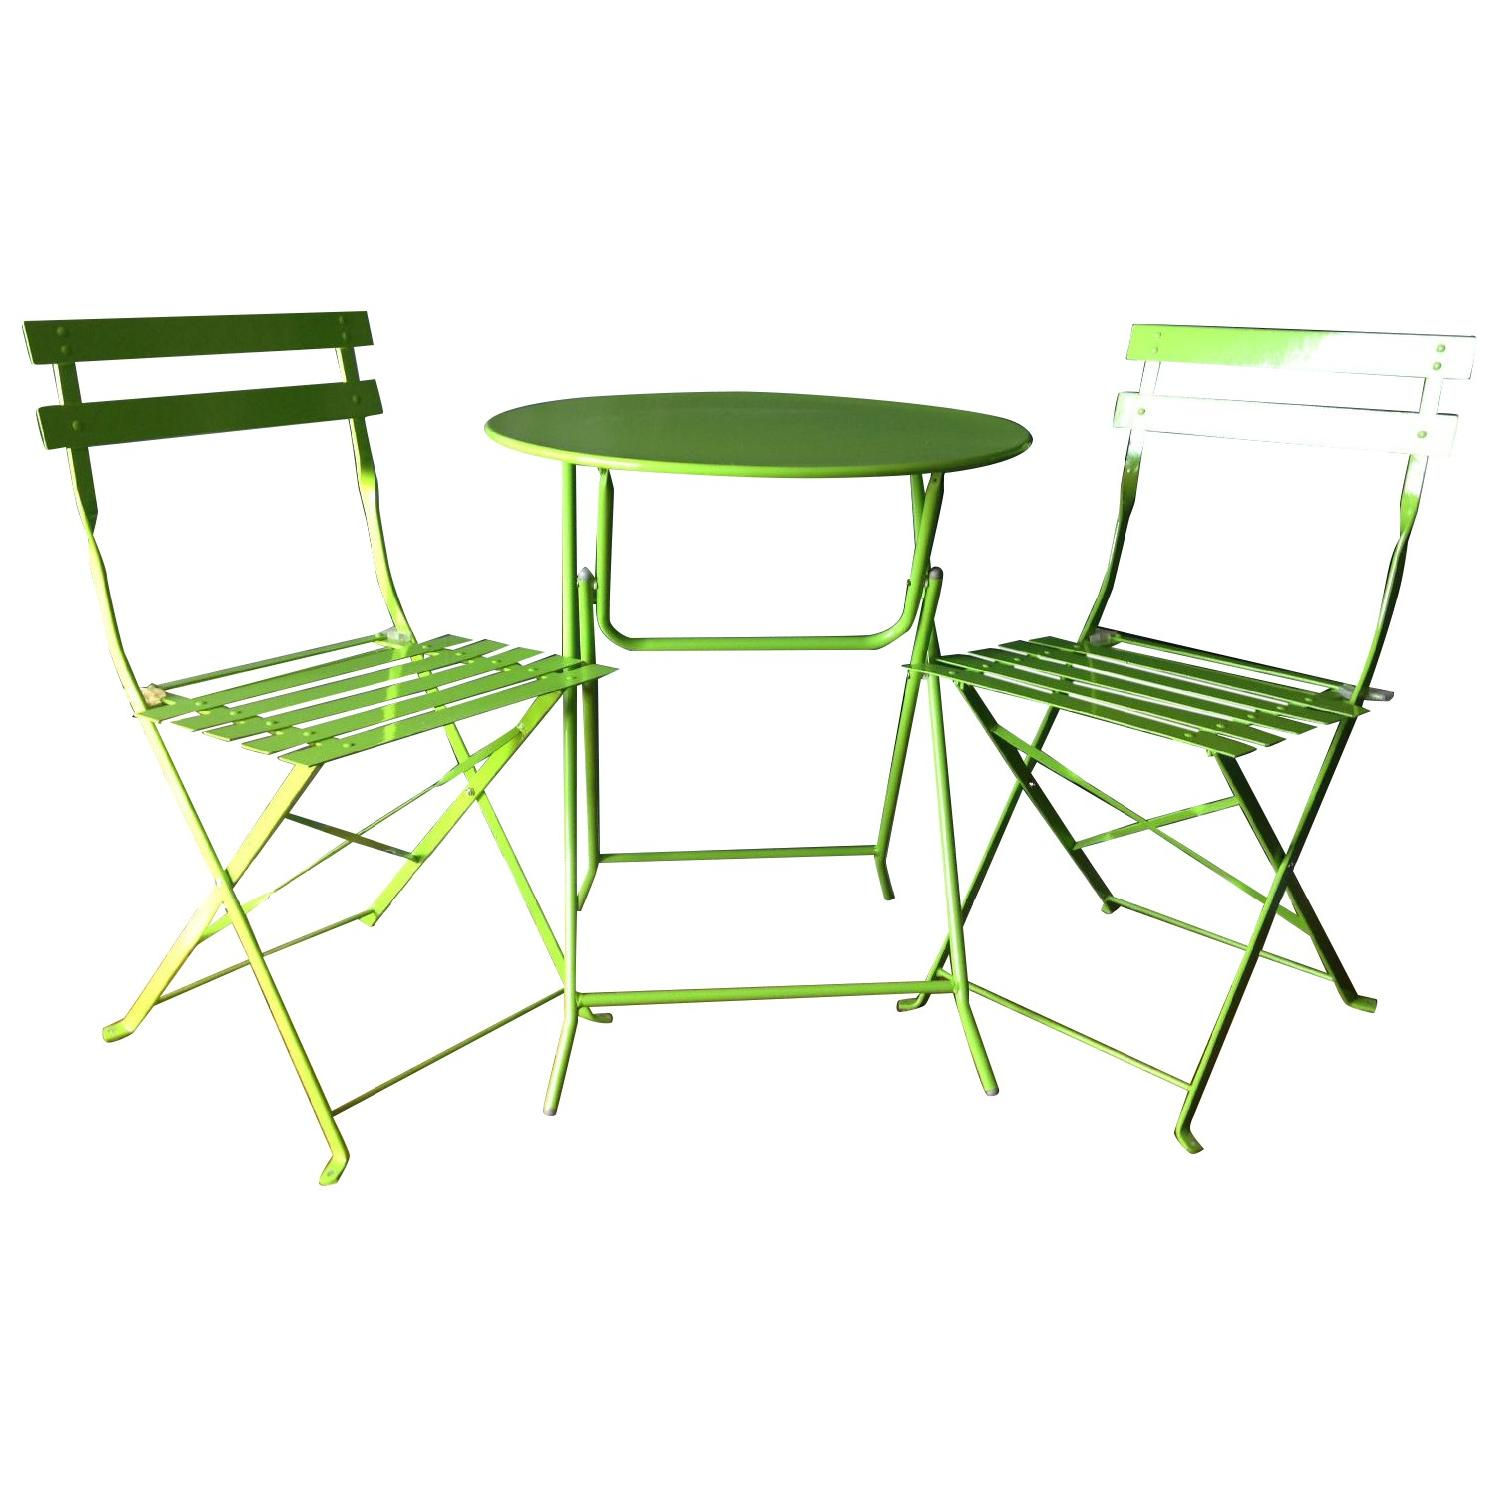 Fun Lime Green Bistro Table w/ 2 Chairs - image-0